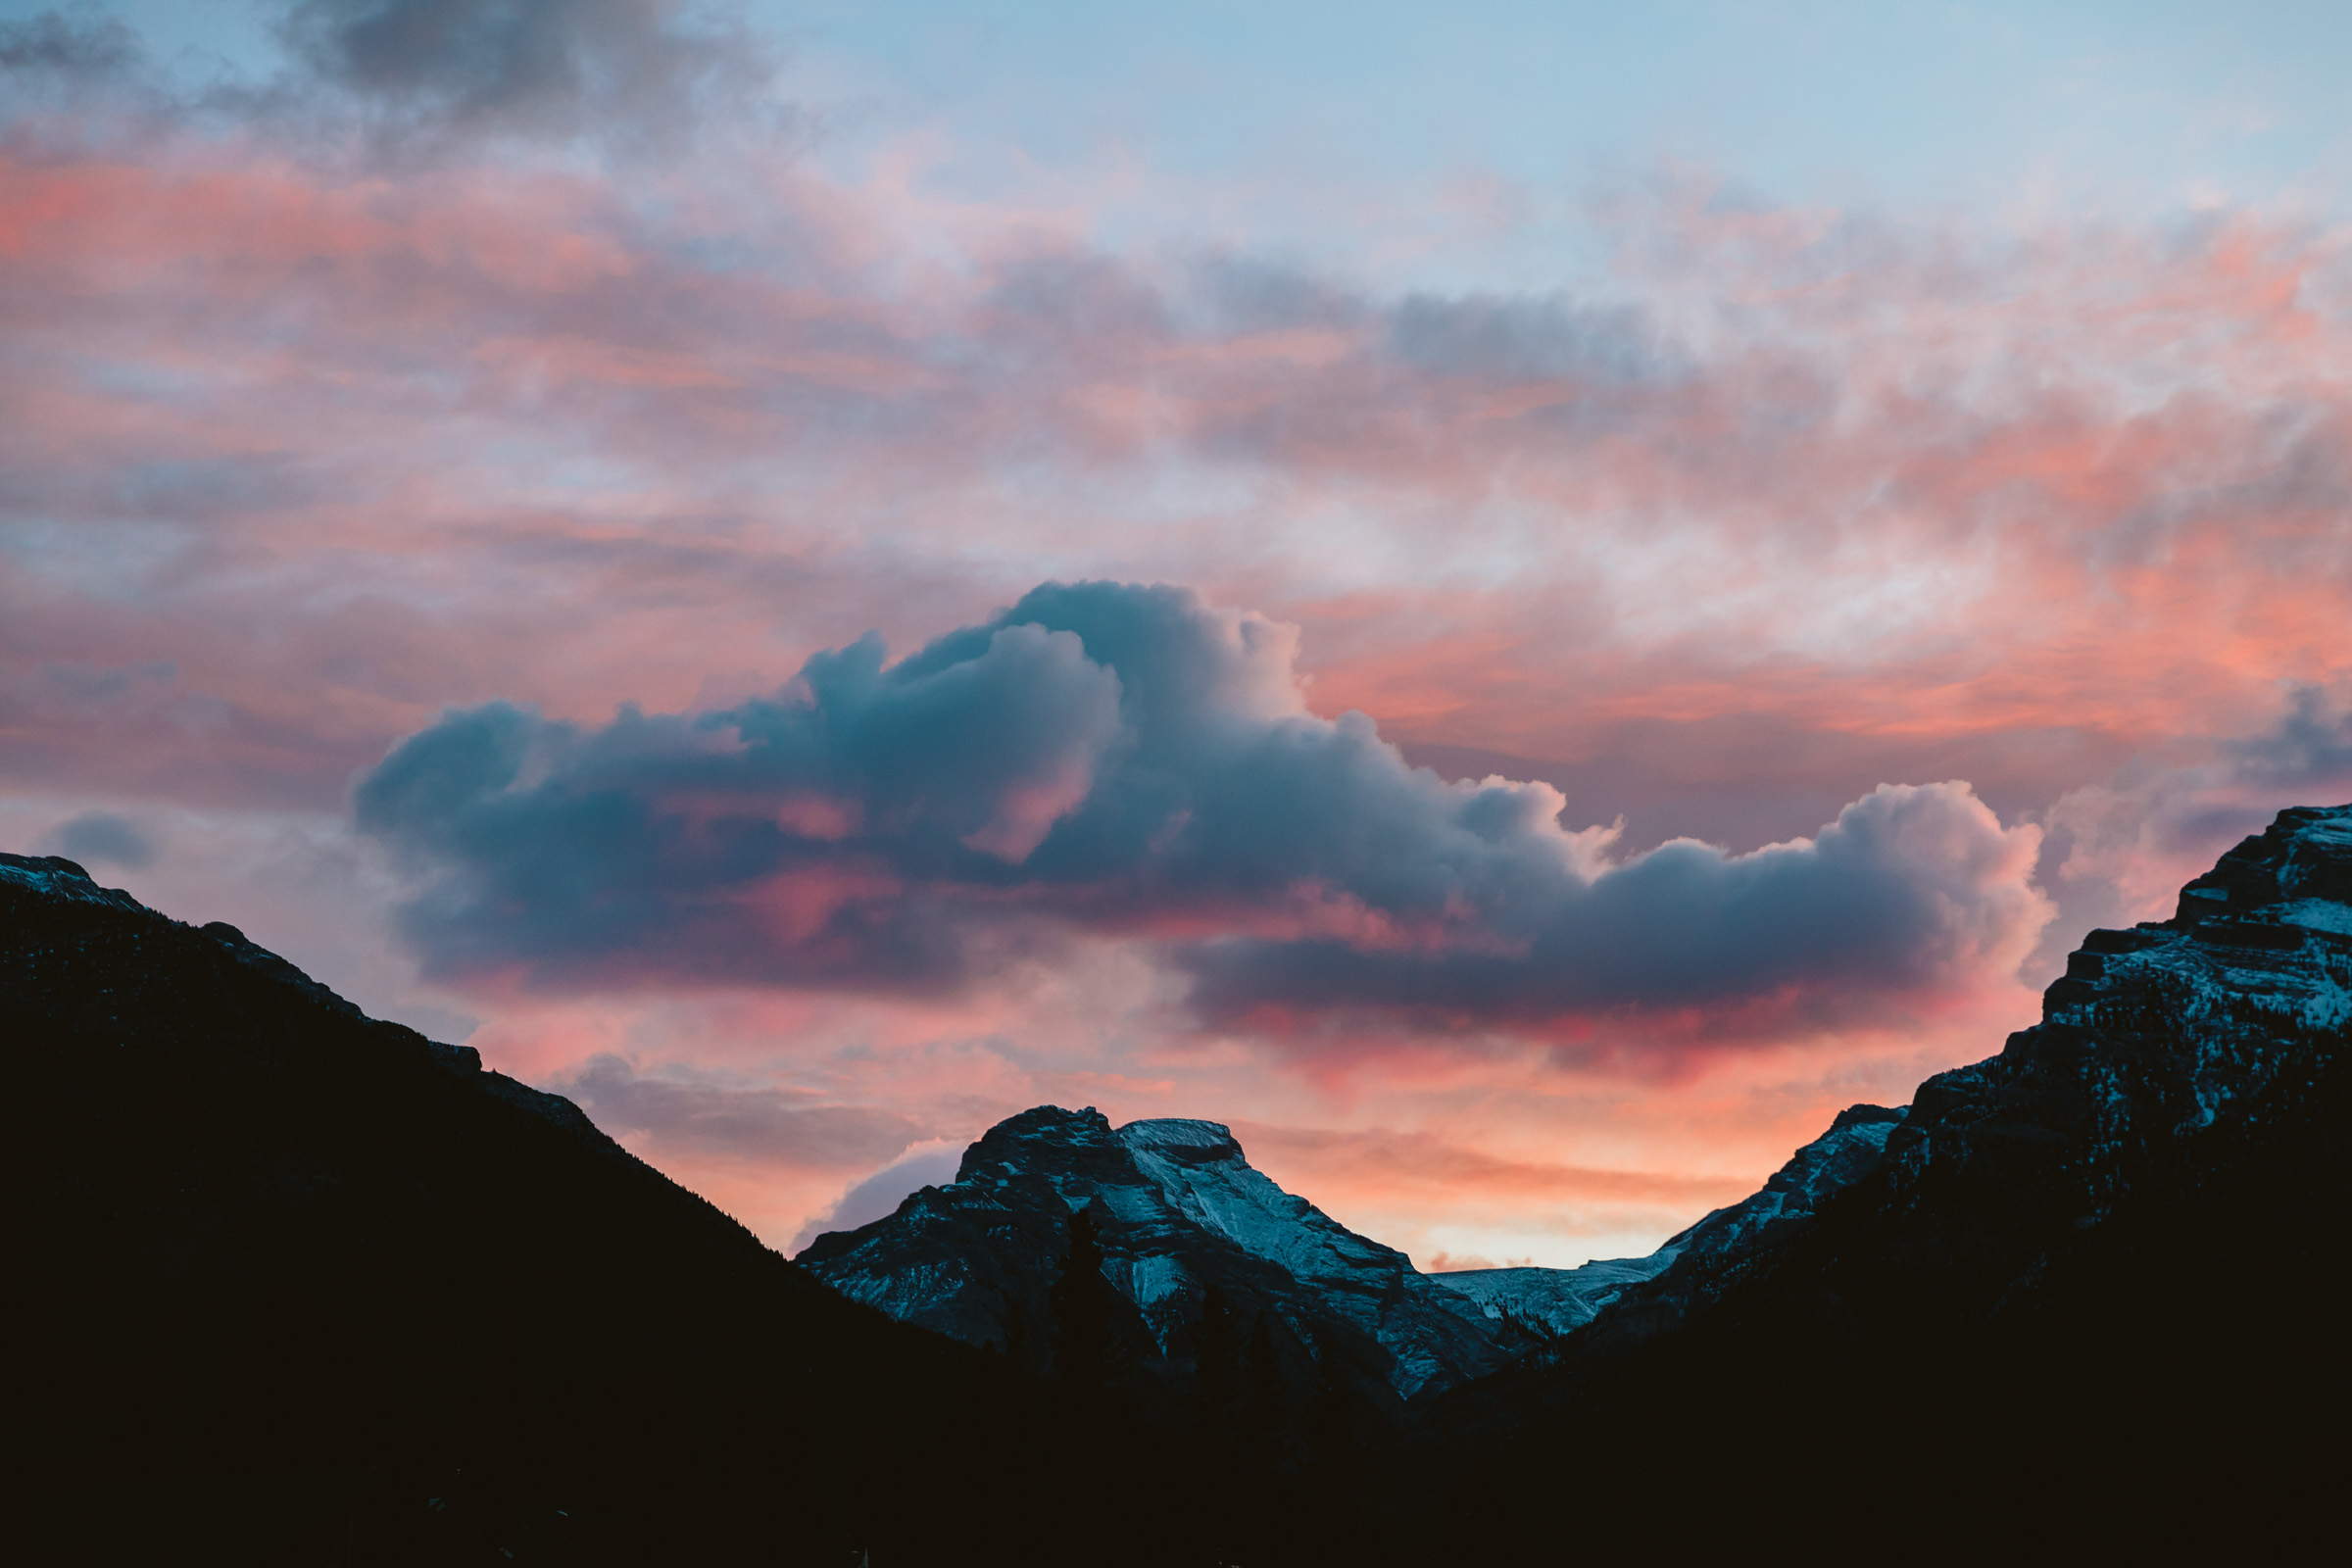 canada-alberta-lifestyle-photography-mikeseehagel-32